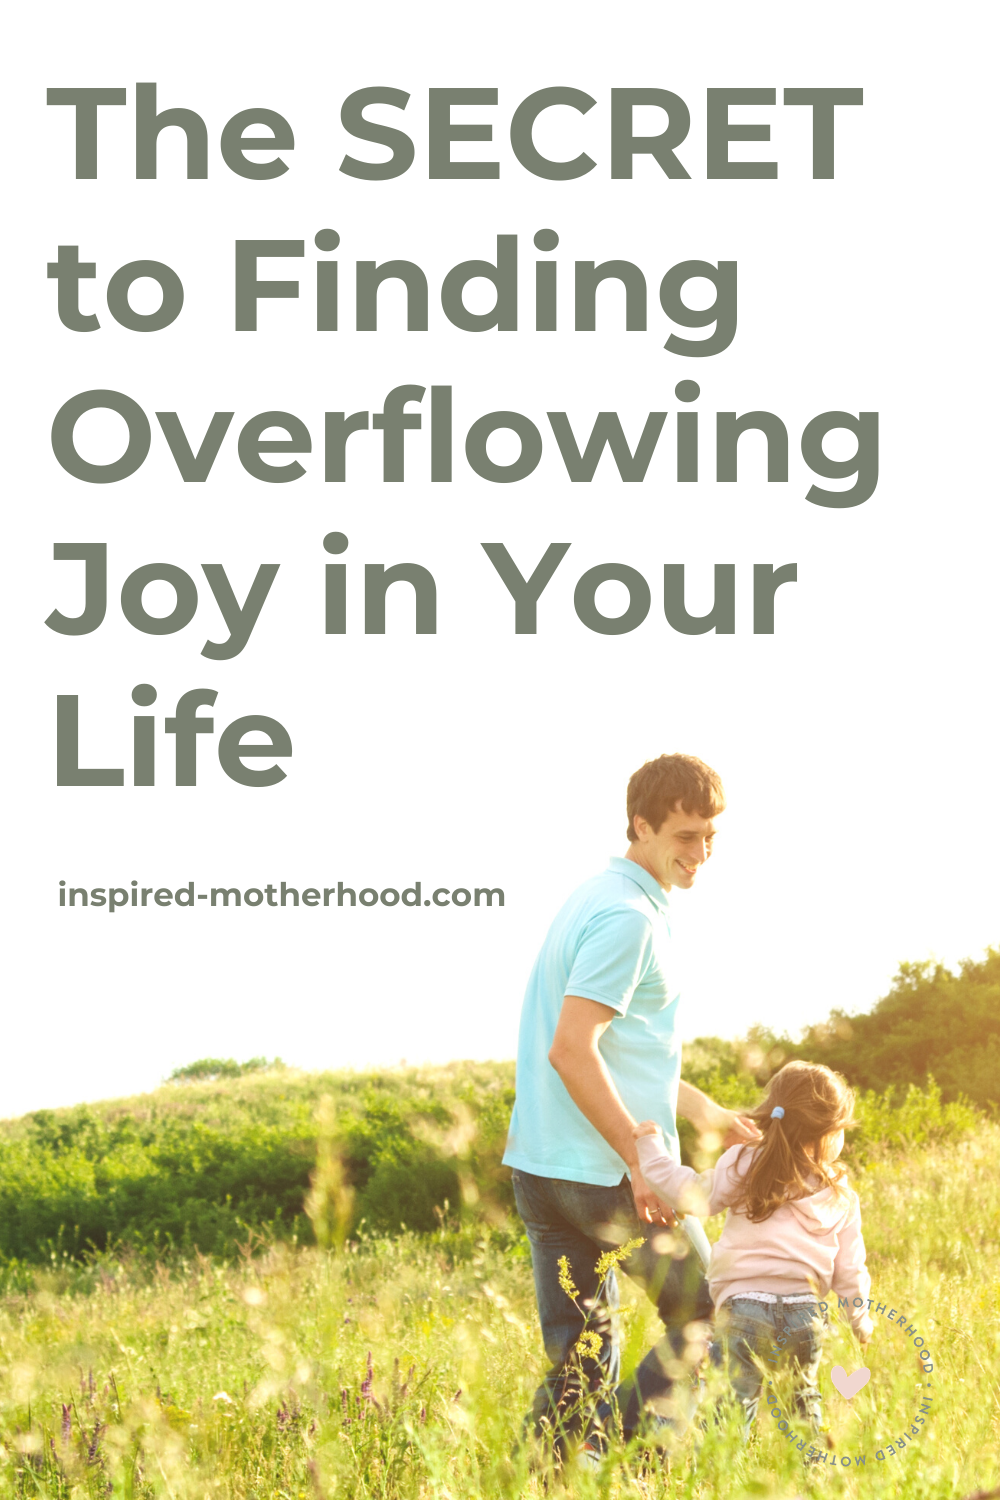 Looking for more joy in your life? Here are two easy ways to bring more joy and laughter into your life and home!